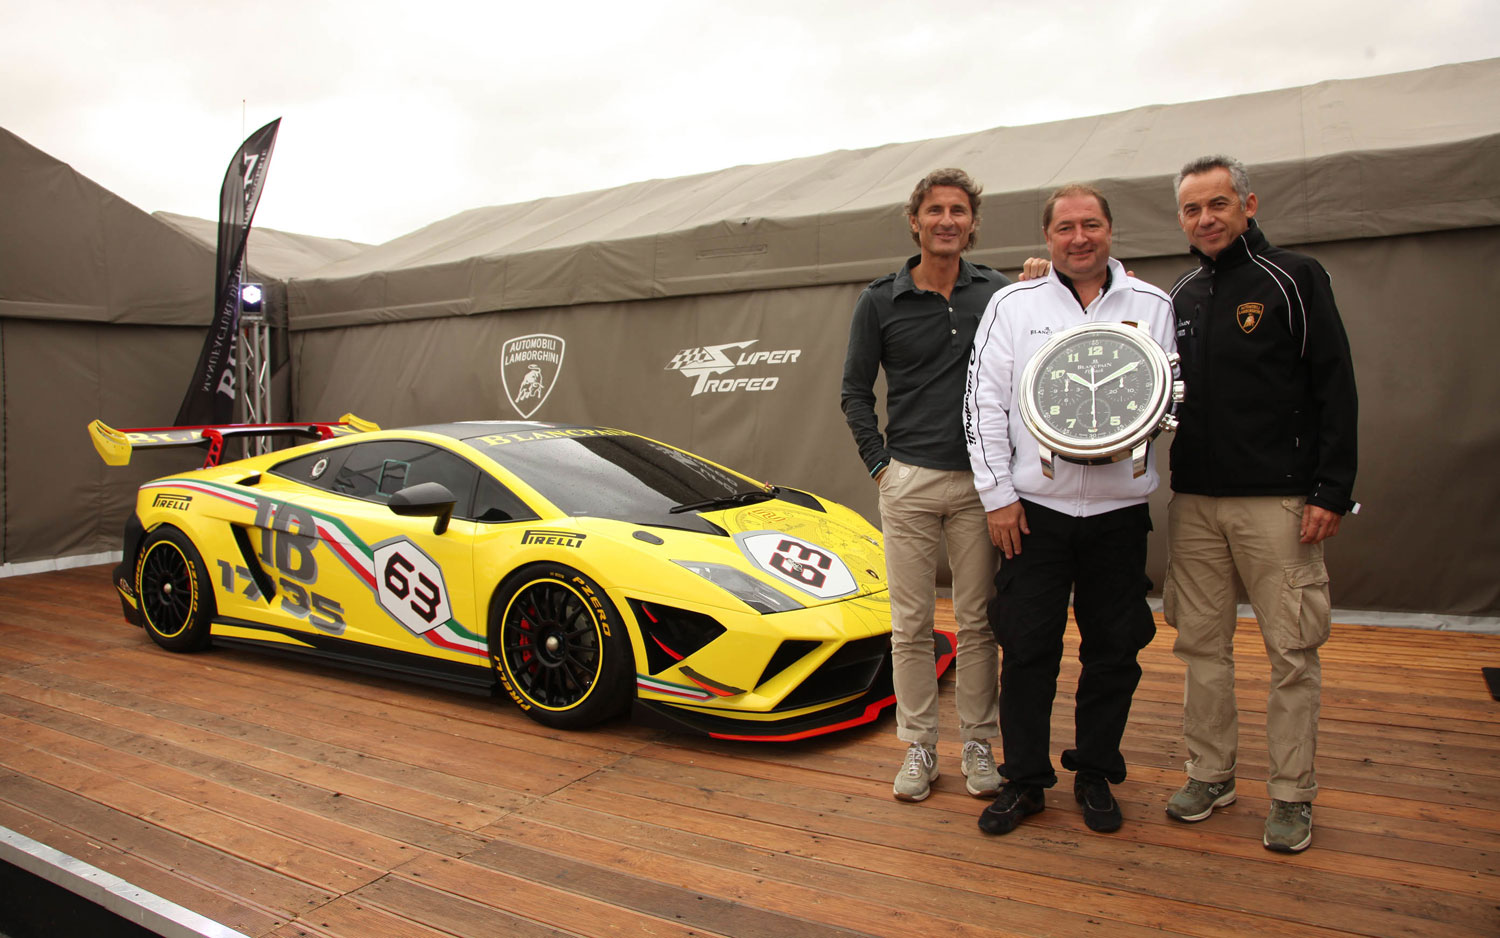 2013 Lamborghini Gallardo LP 570 4 Super Trofeo Car With Execs1